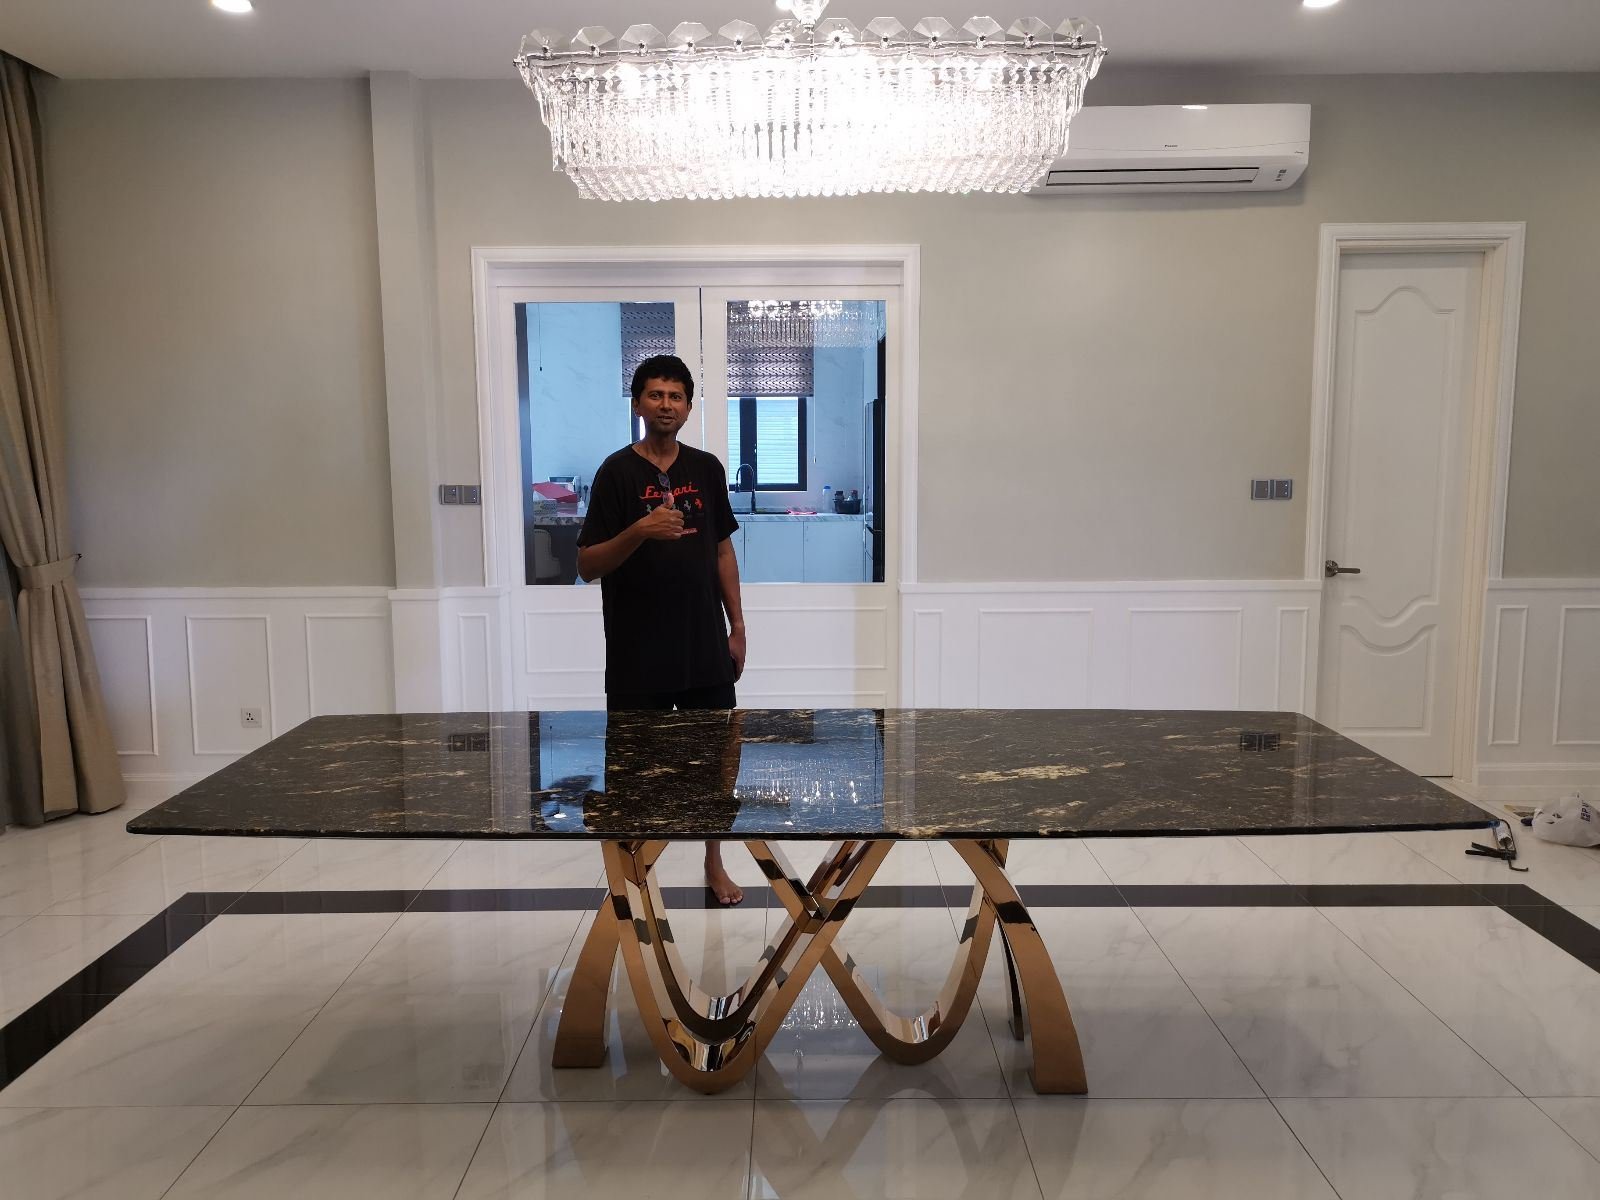 Premium Granite Dining Table From Brazil - Cosmic Silver Granite